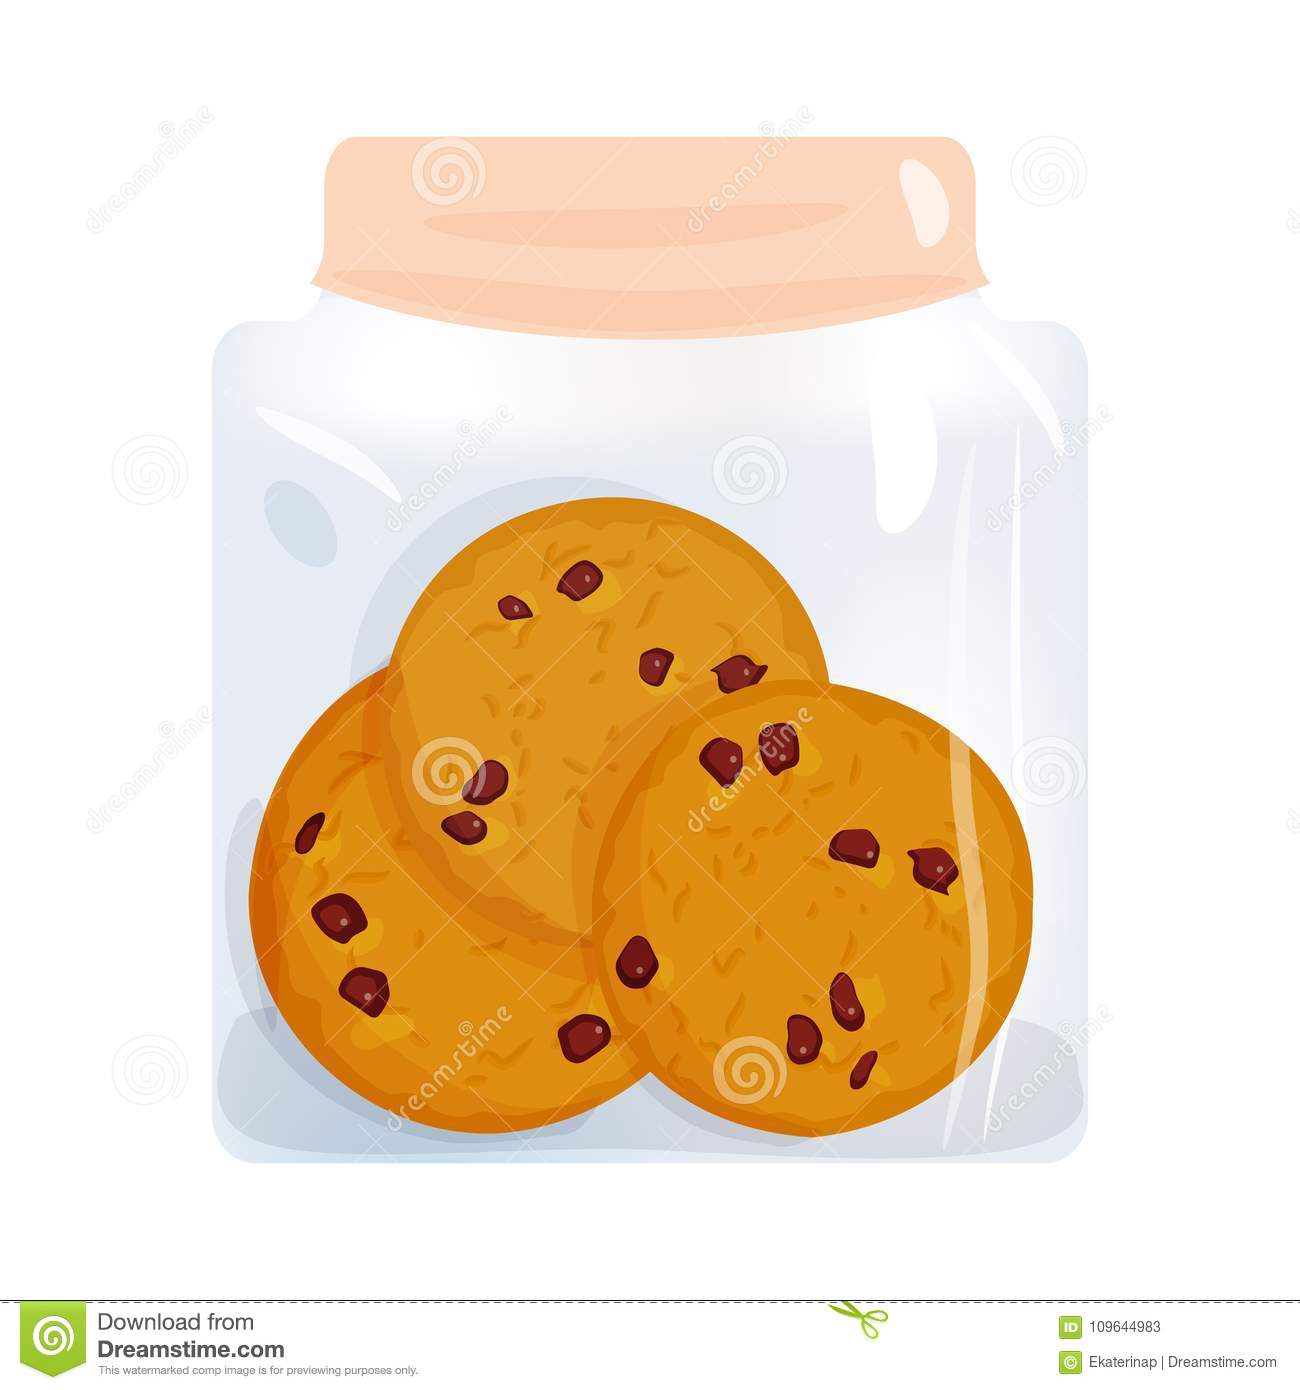 Chocolate chip cookie set, homemade biscuit in glass jar, isolated on white background. Bright colors. Vector